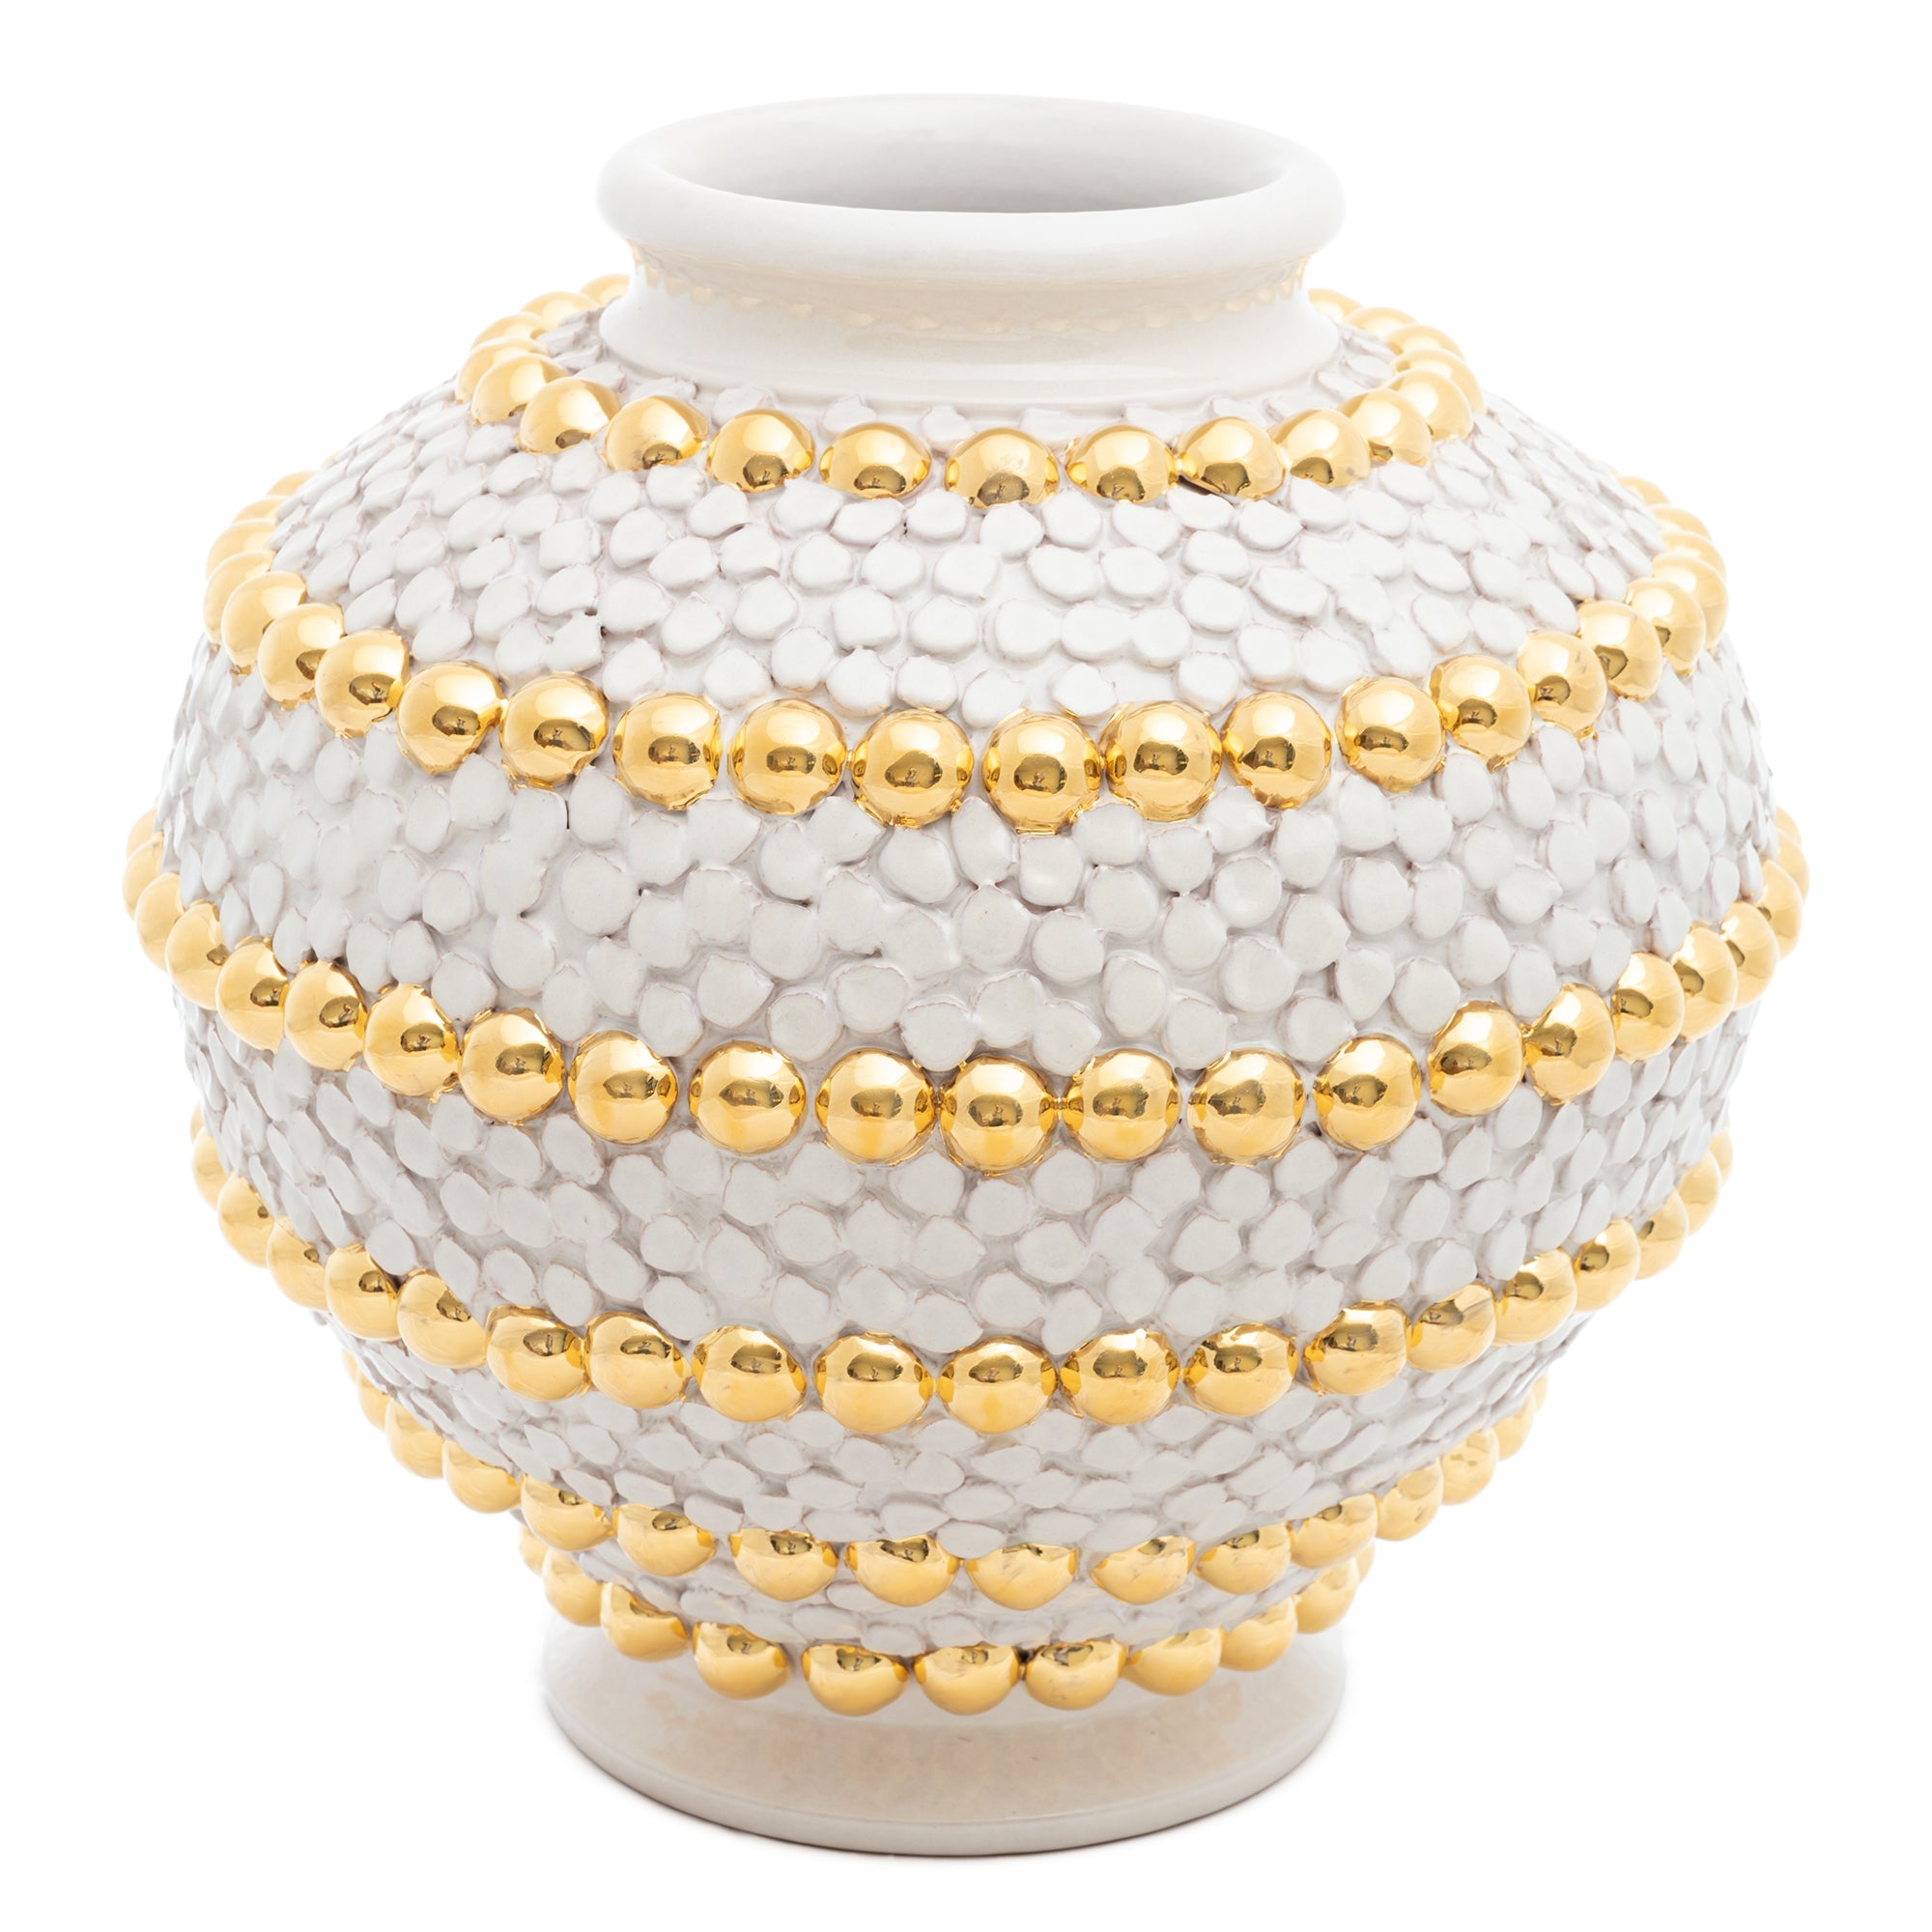 ND Dolfi Cream Ortensia And Buttons Vase With 24 Karat Gold Details